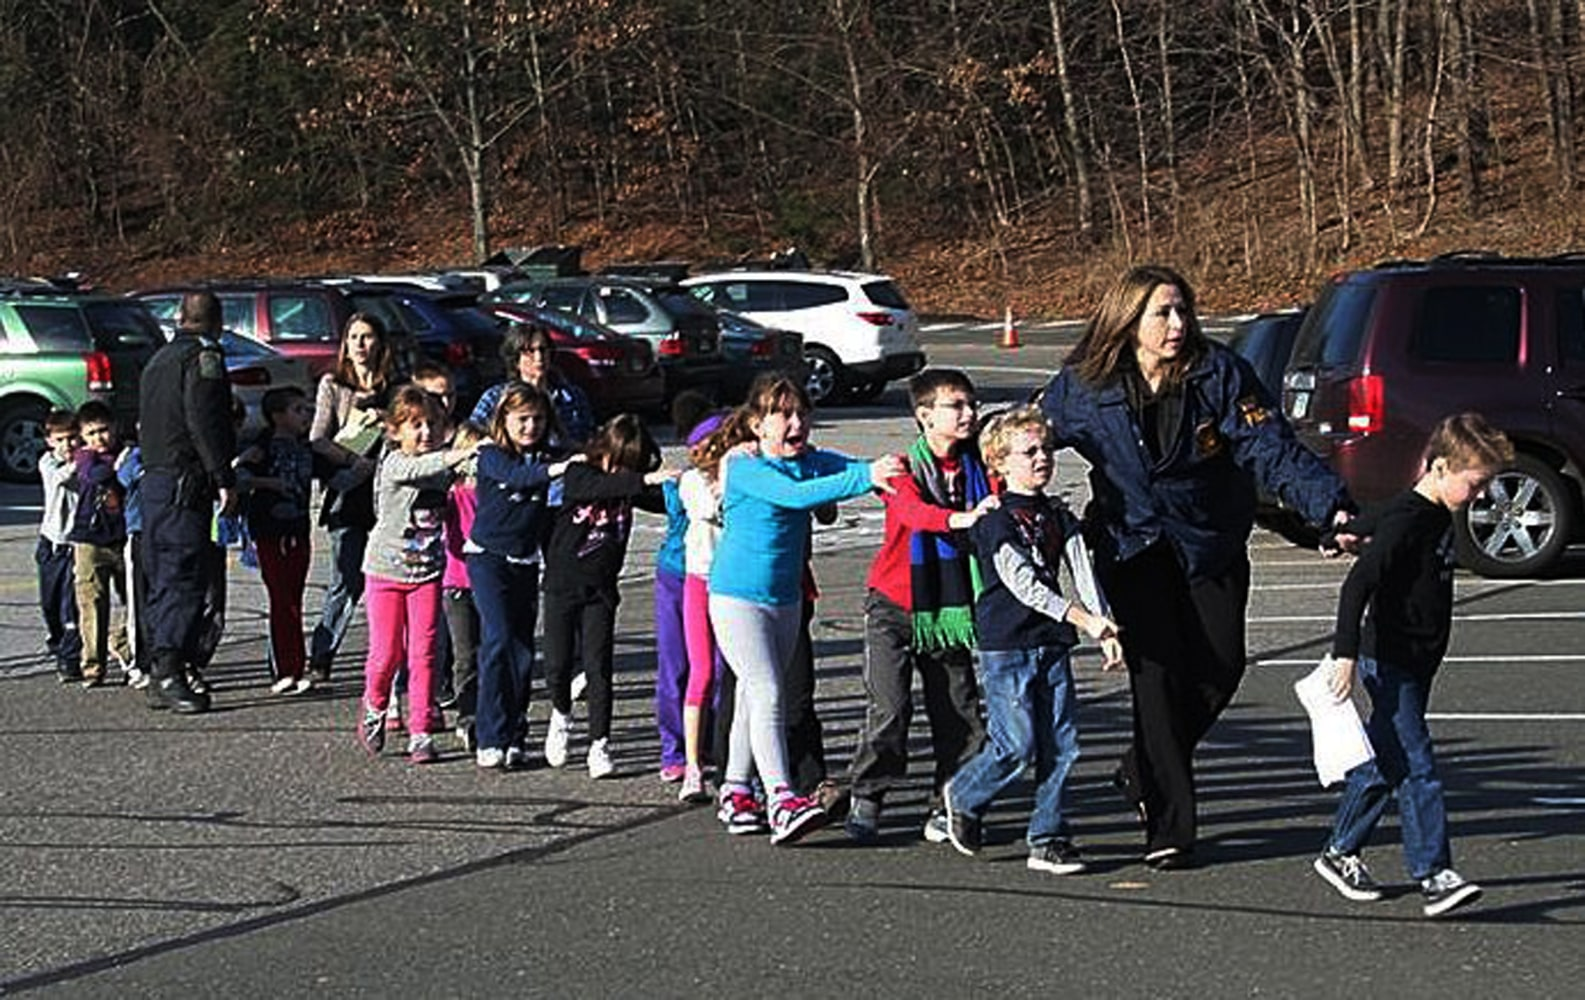 Sandy Hook Elementary shooting: What happened? - CNN.com